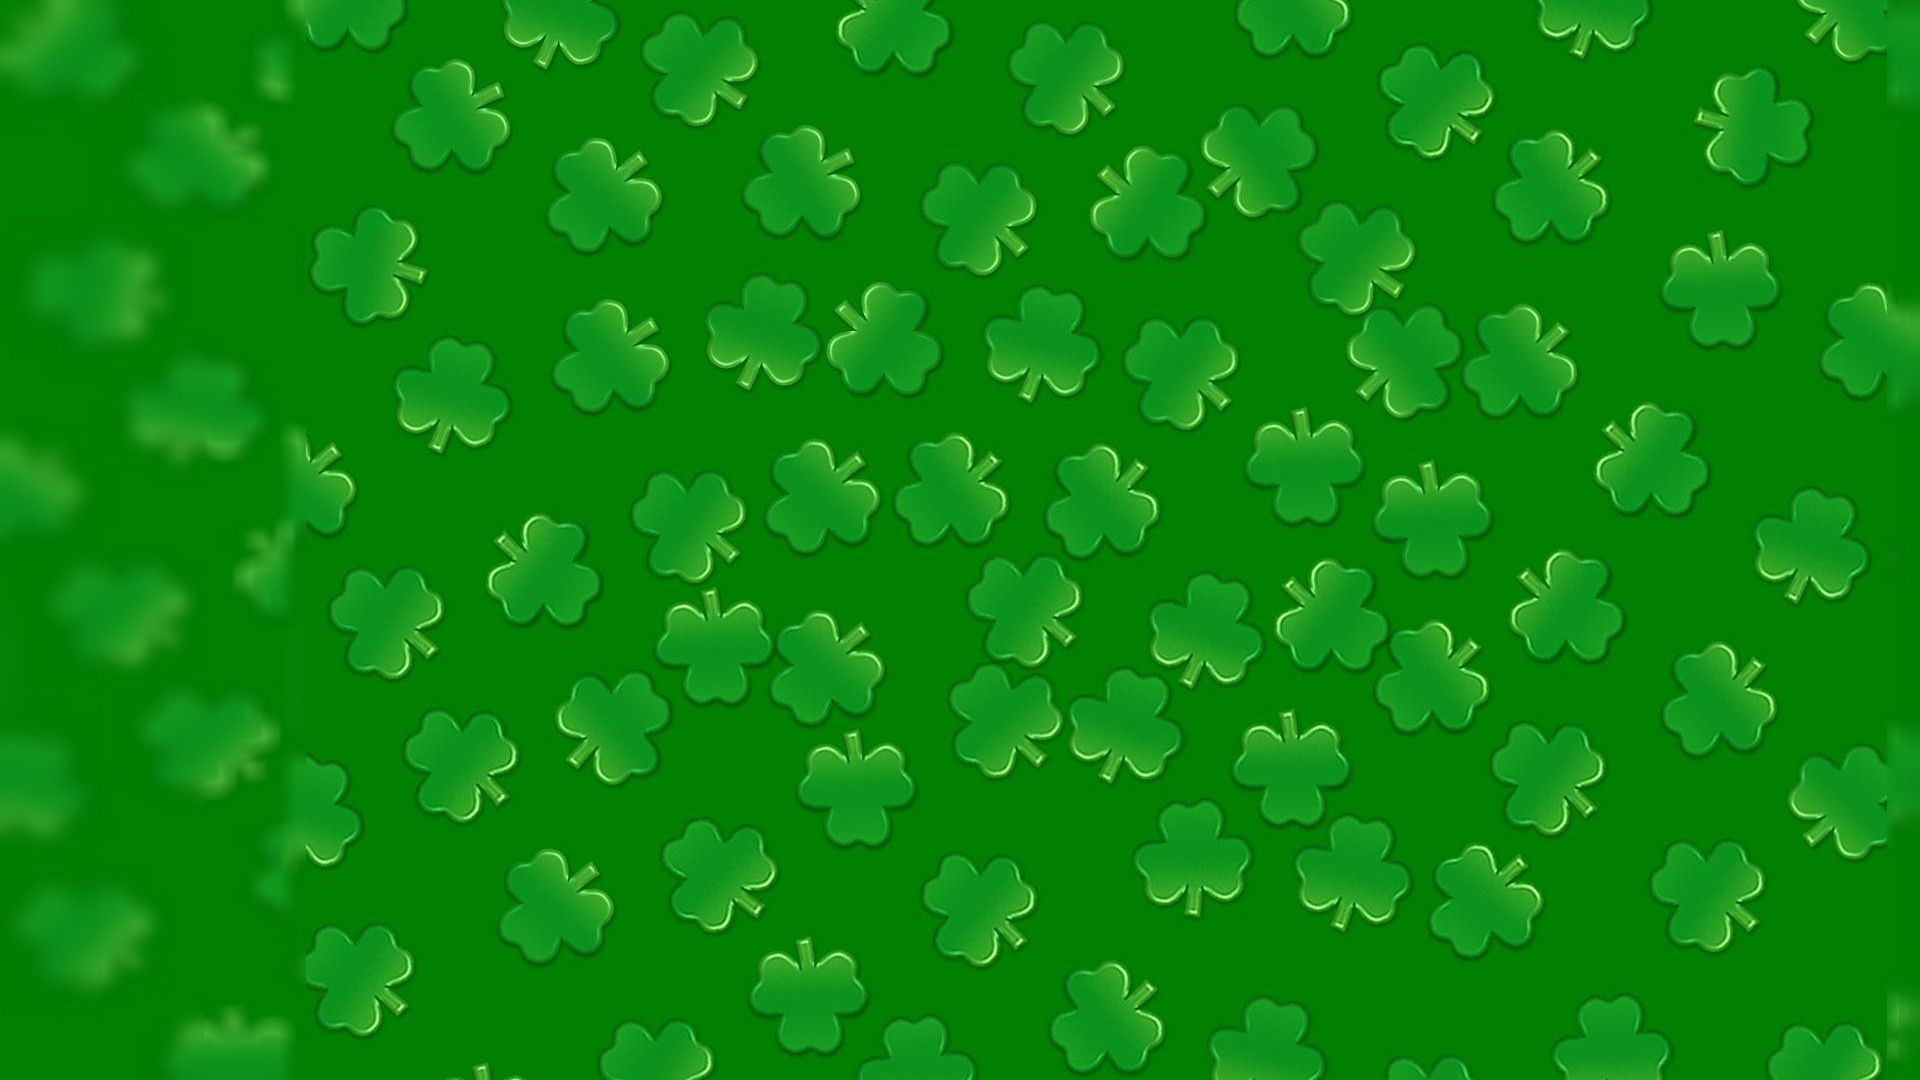 st. patrick's day hd wallpapers - hd wallpapers innwallpaper